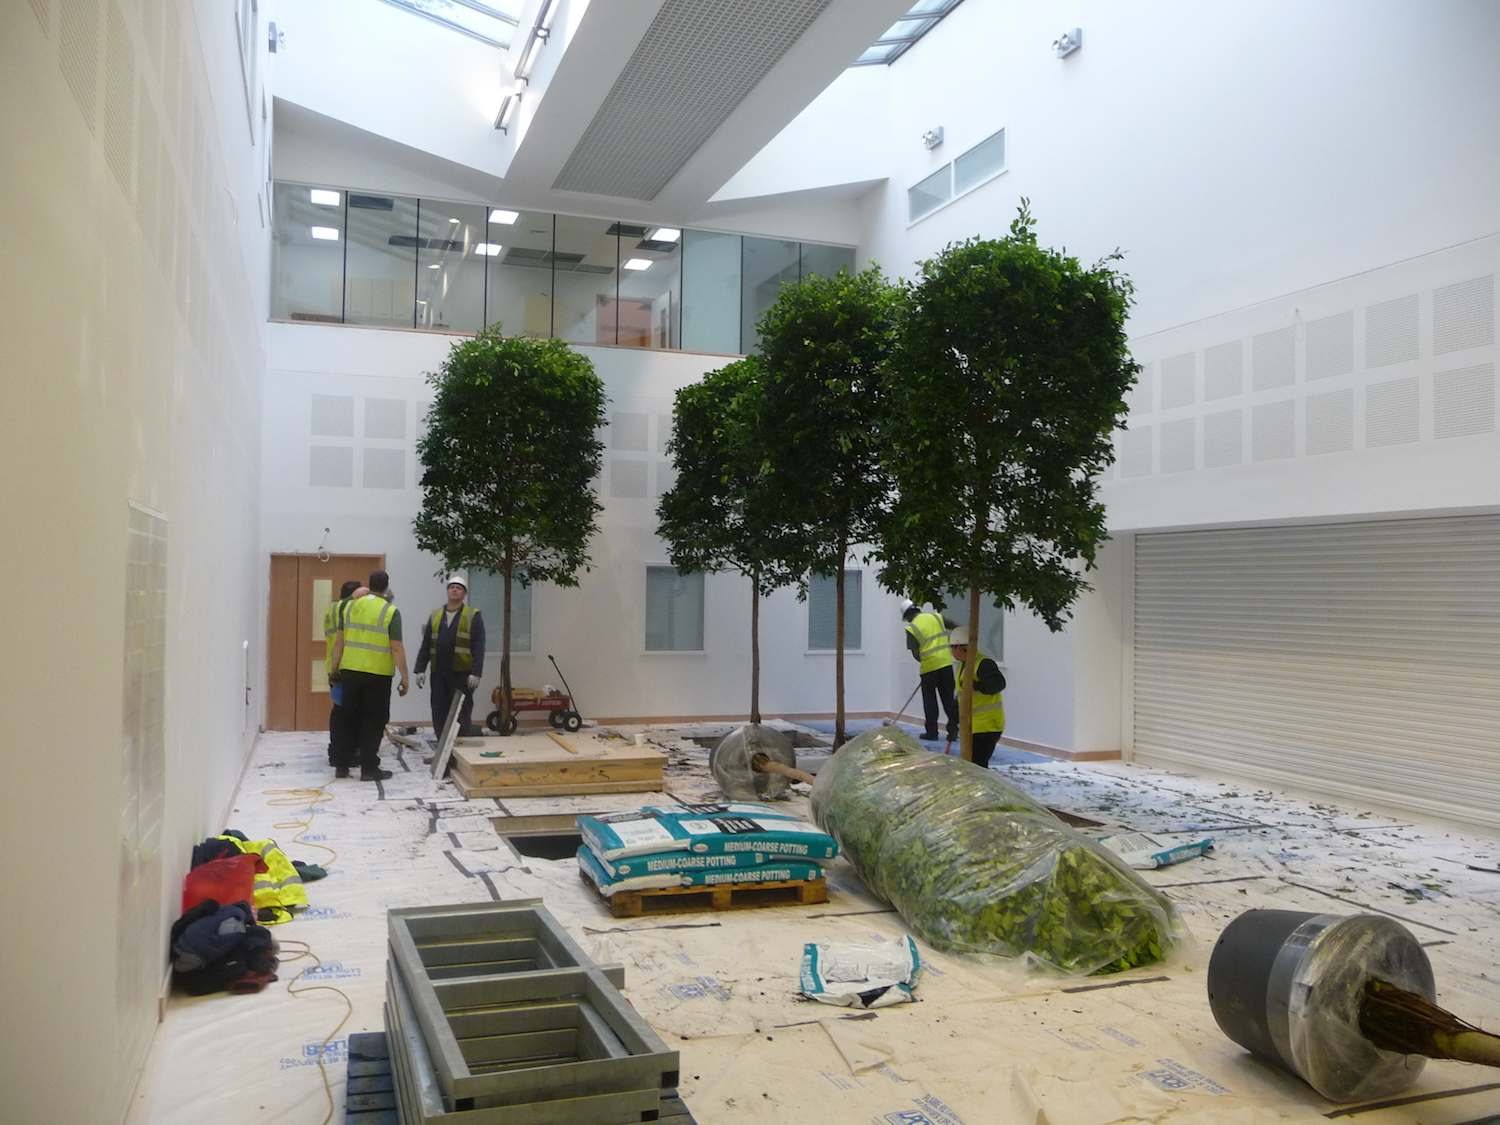 bristol-royal-infirmary-hospital-plantcare-interior-plants-trees-bristol-image-3